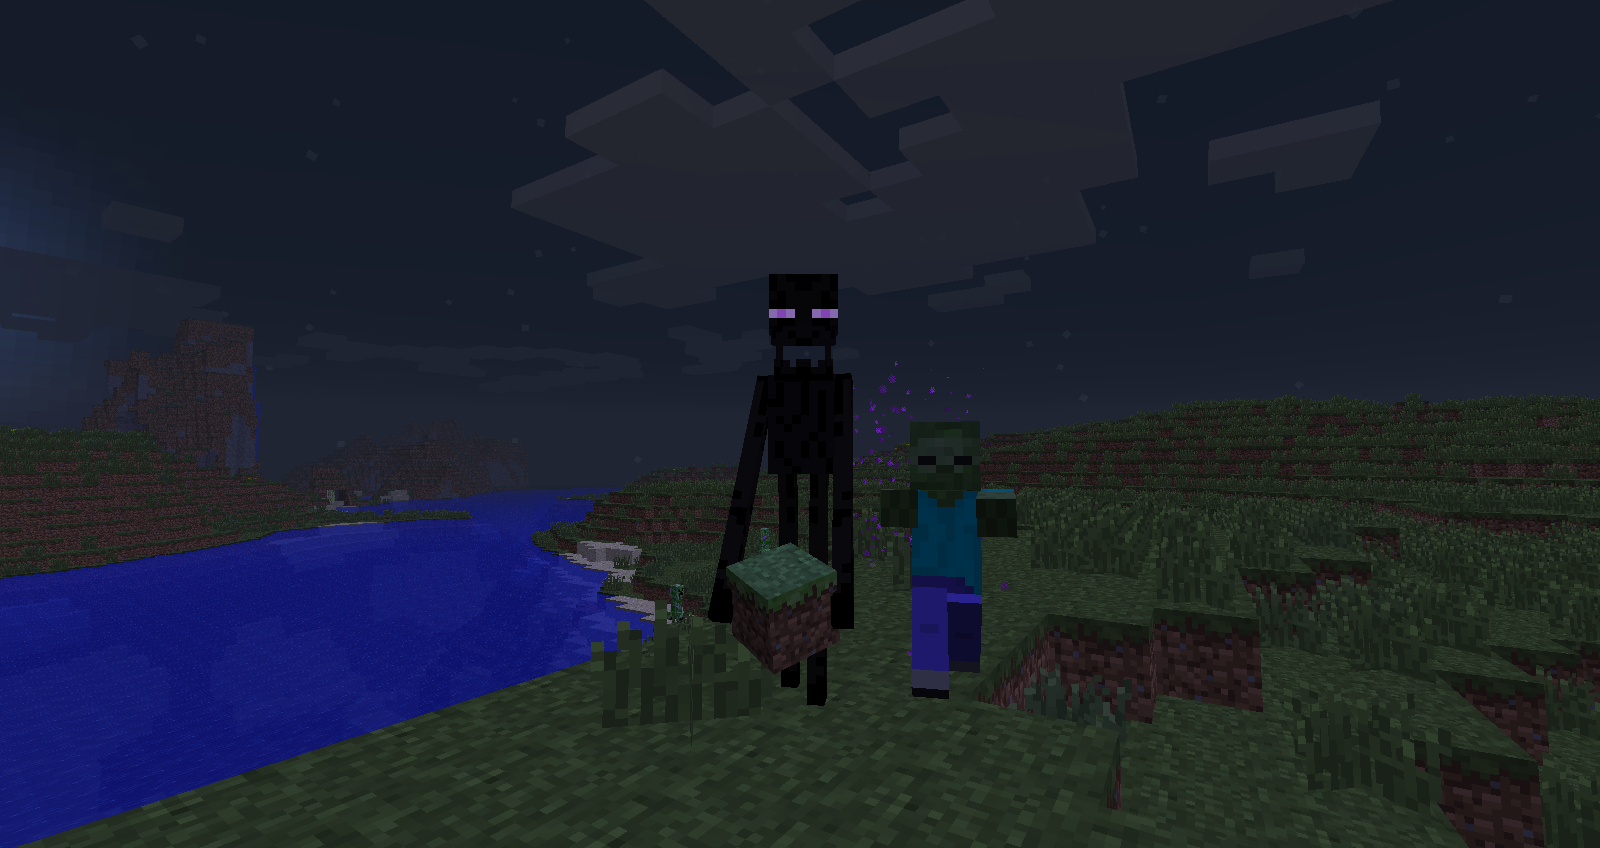 MINECRAFT: Enderman a co to?